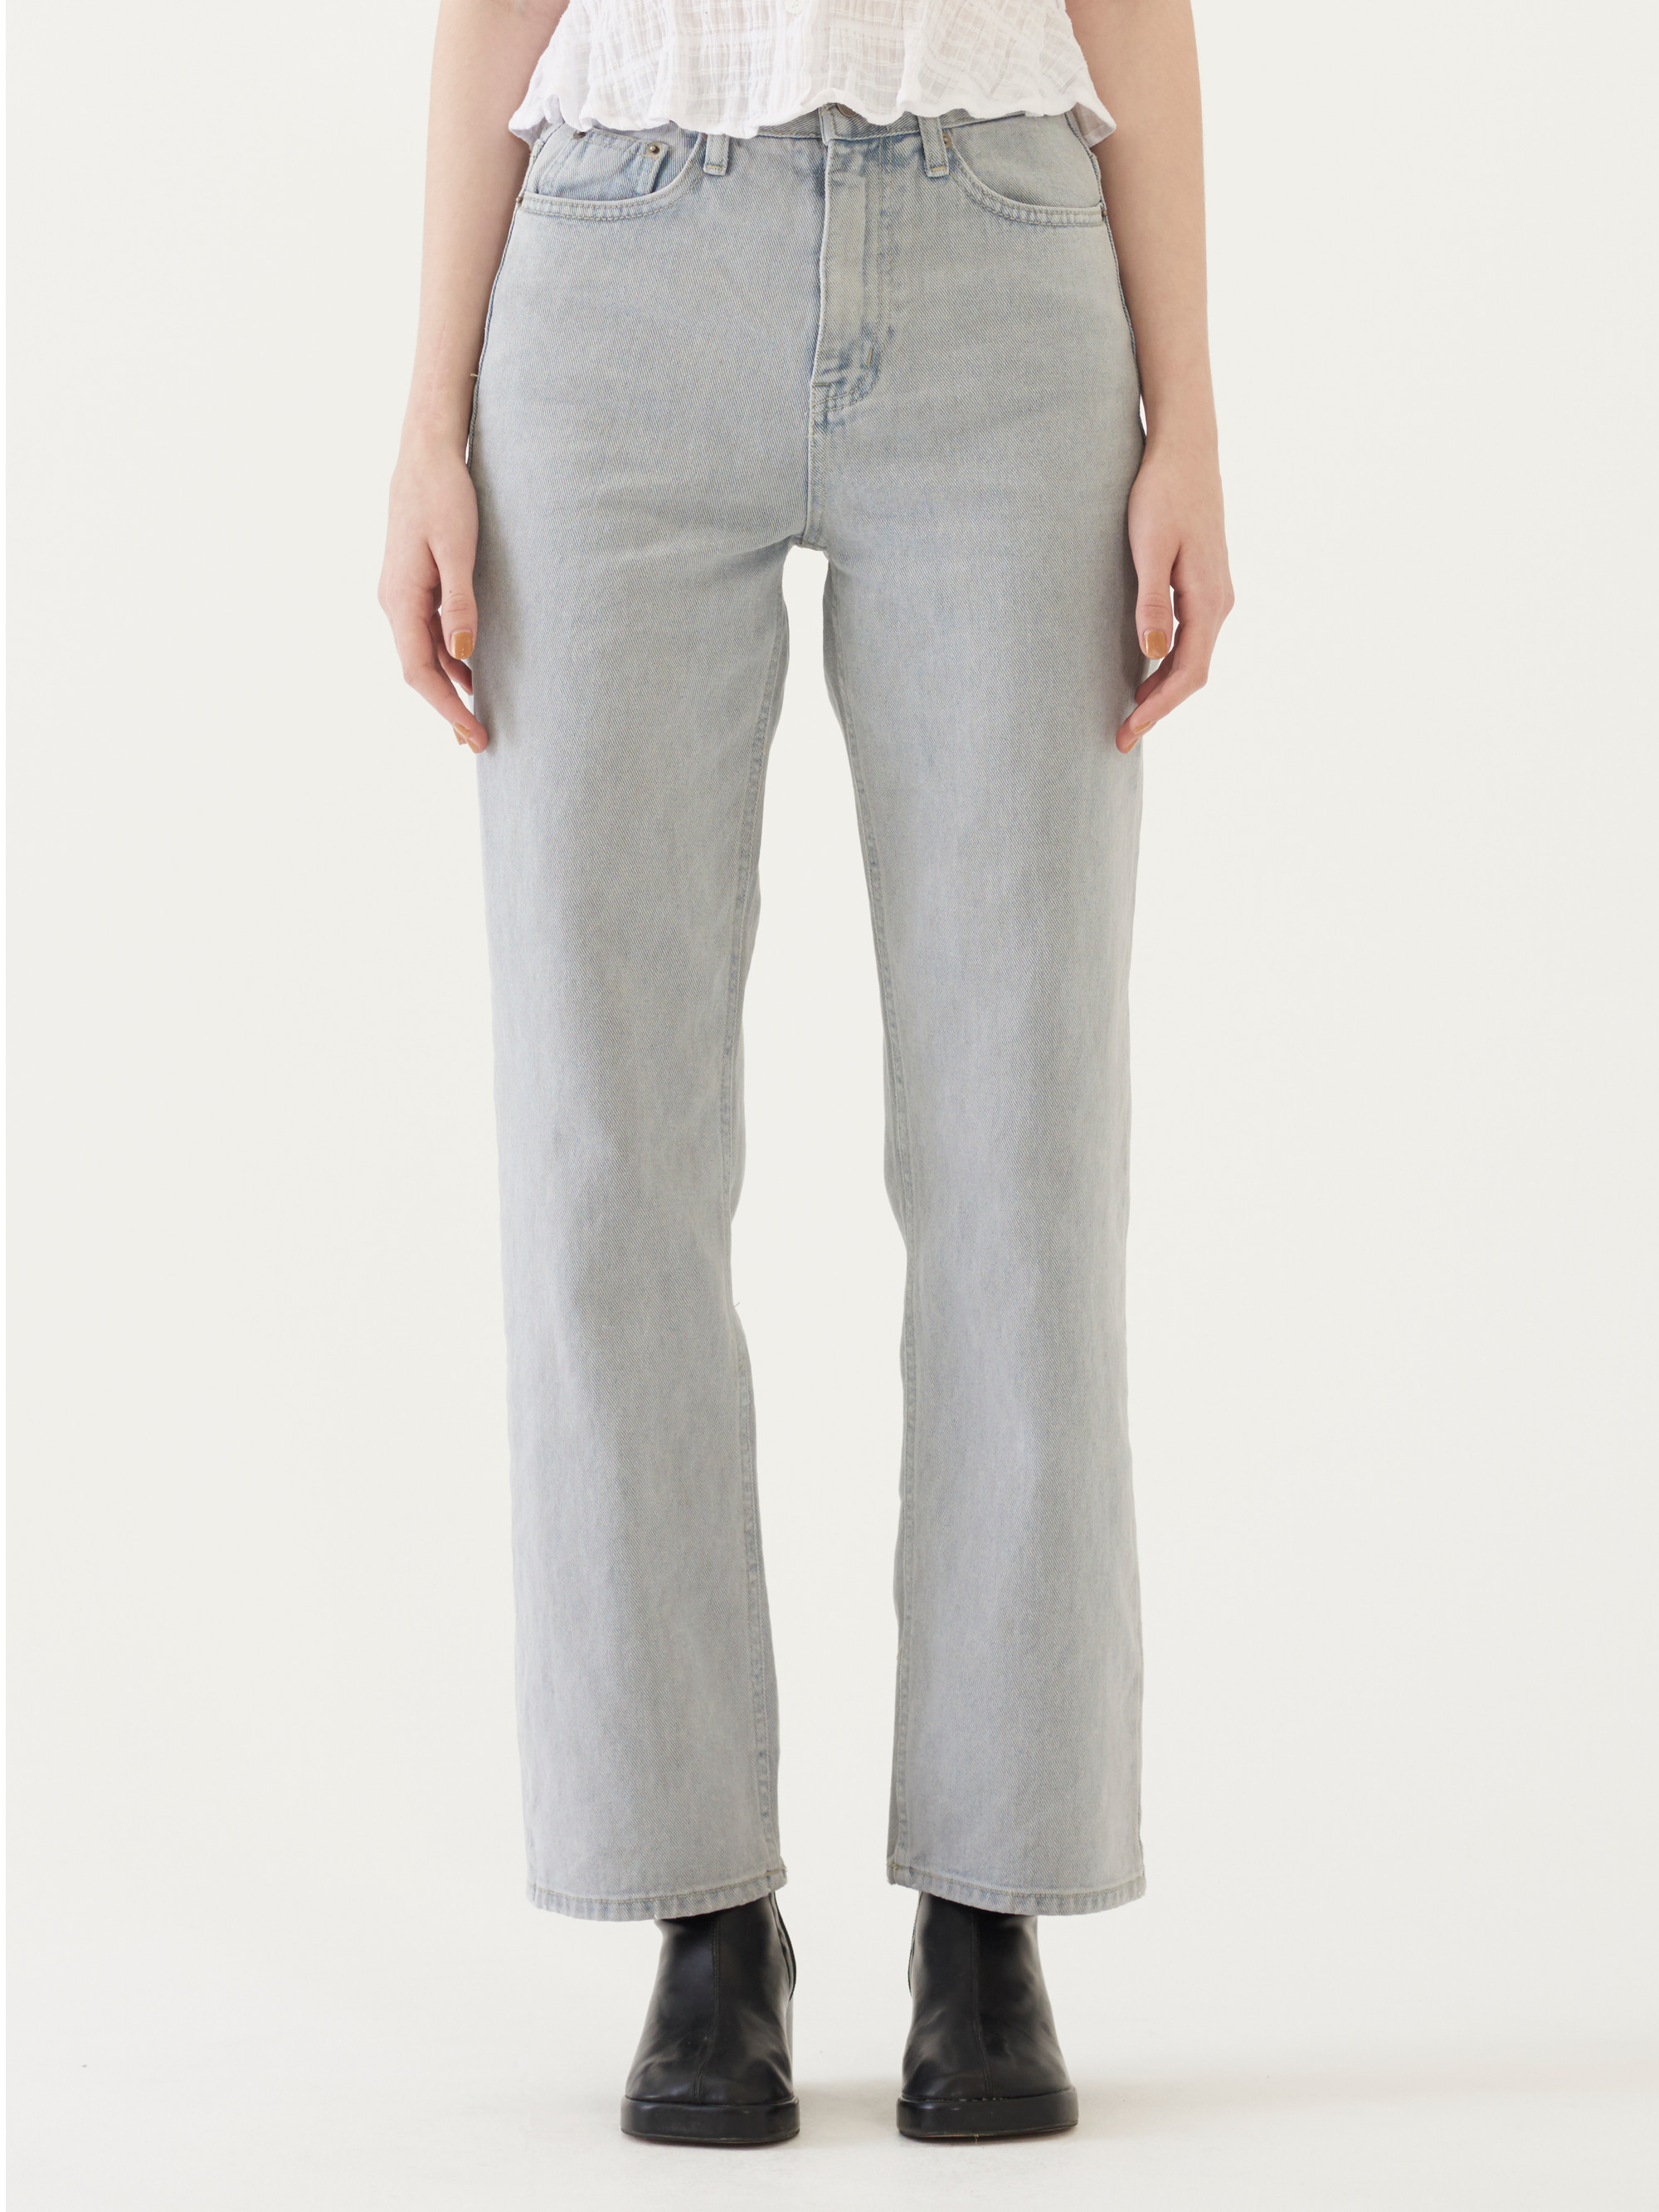 STRAIGHT FIT JEANS (GRAY)